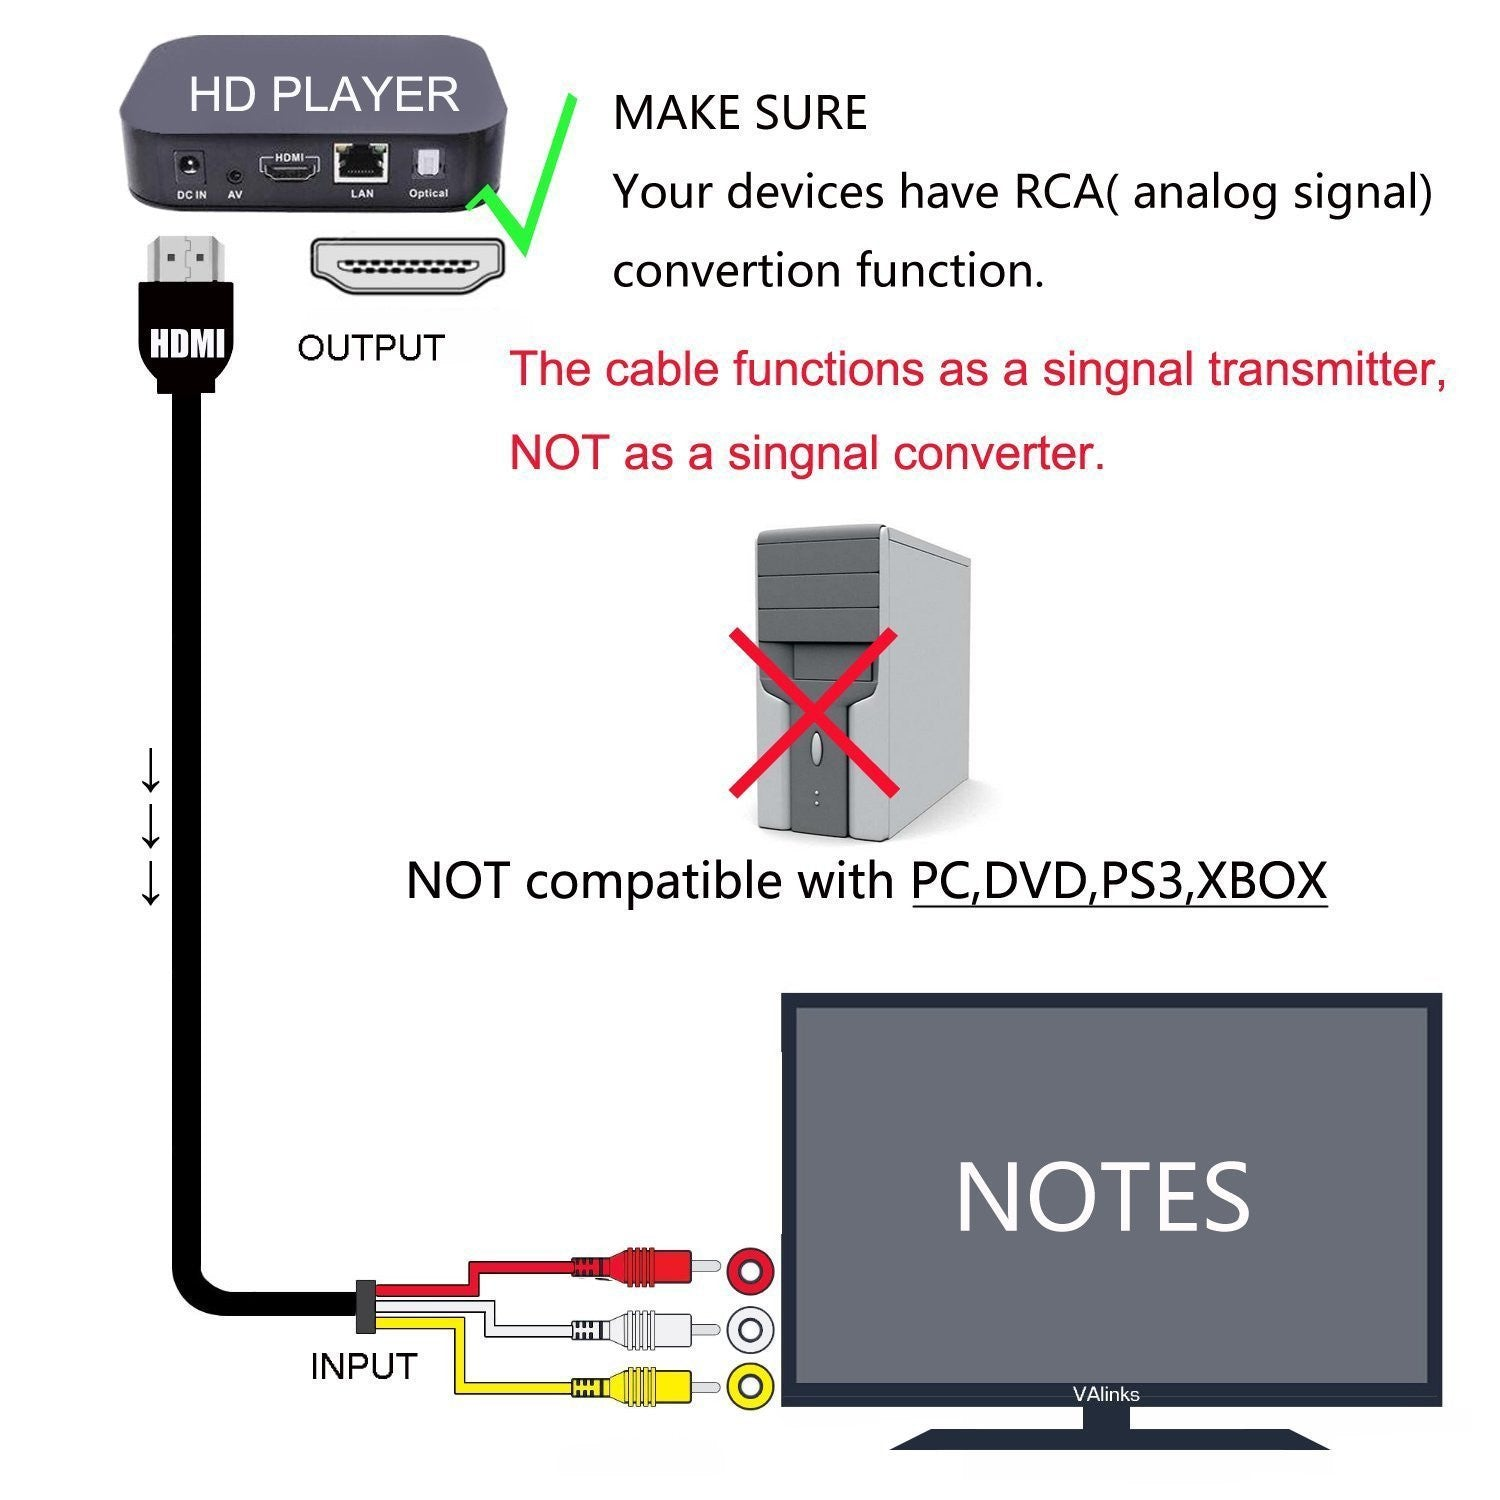 hdmi to ypbpr wire diagram wiring diagram data HDMI Wire Color Code tpac some rca converter wiring diagram online wiring diagram hdmi to ypbpr wire diagram source vga and hdmi cable